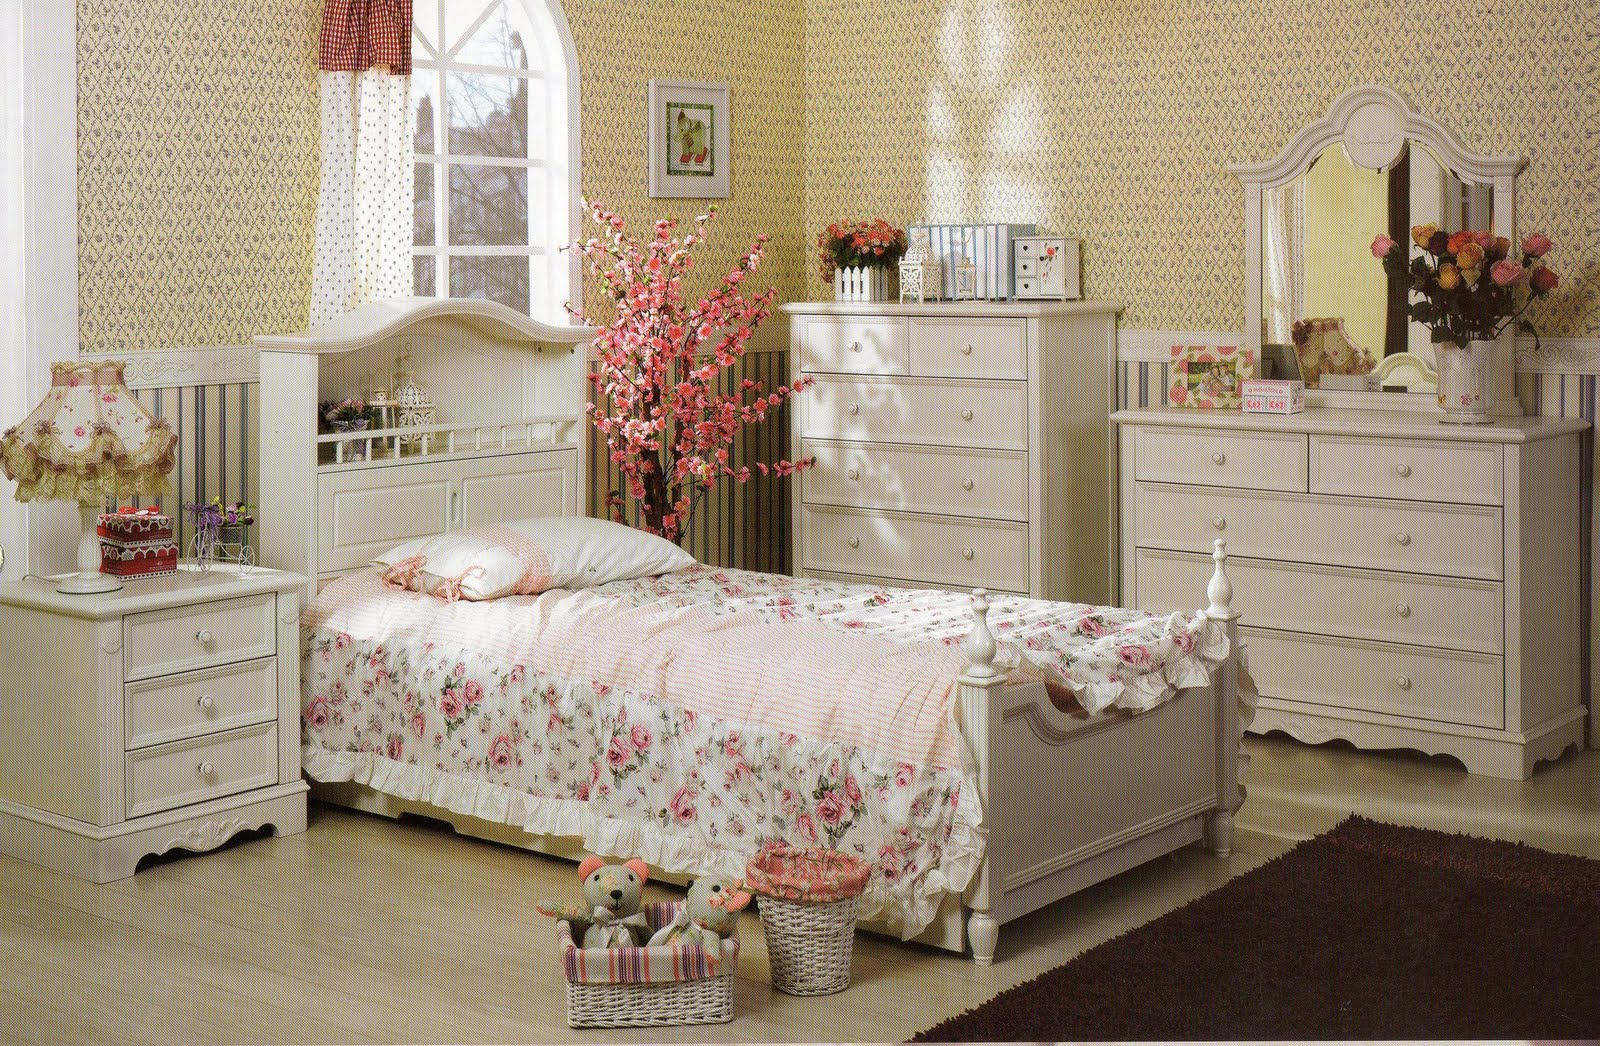 Fsd New Arrival Of Our Beautiful And Elegant French Style Bedroom Suites